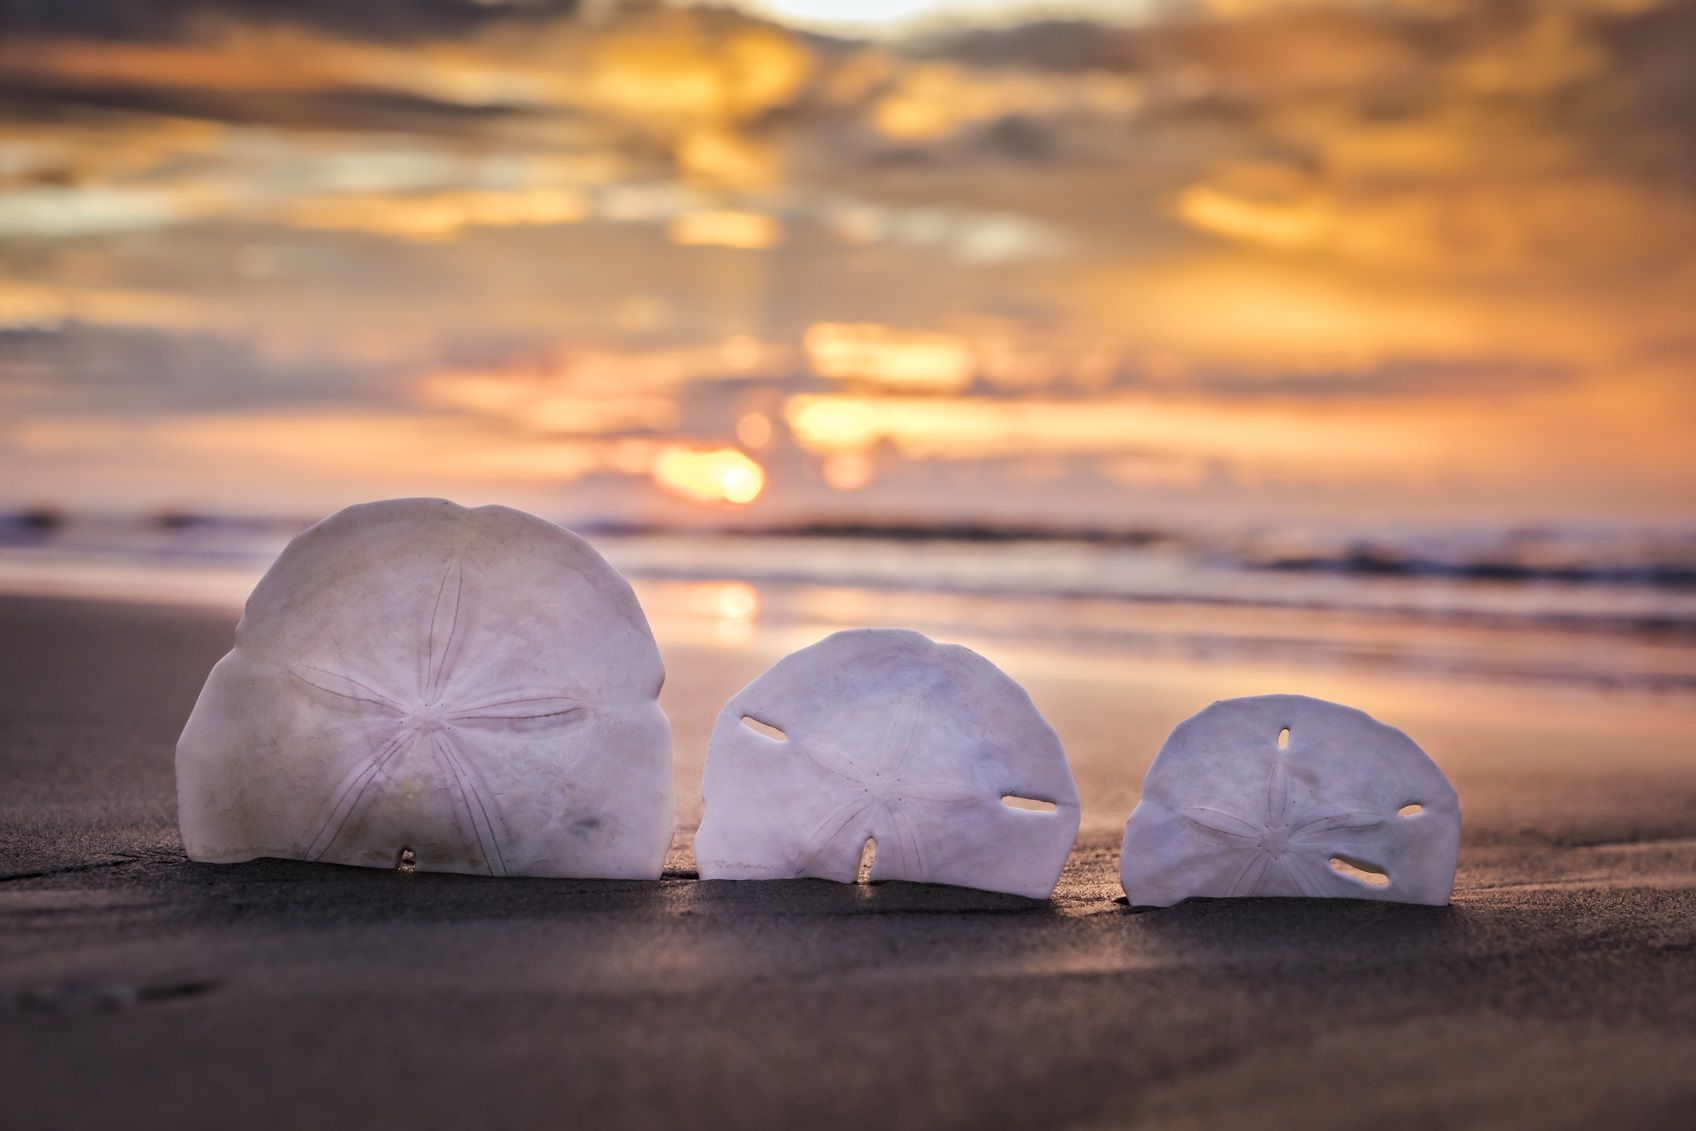 sand dollar display on the beach